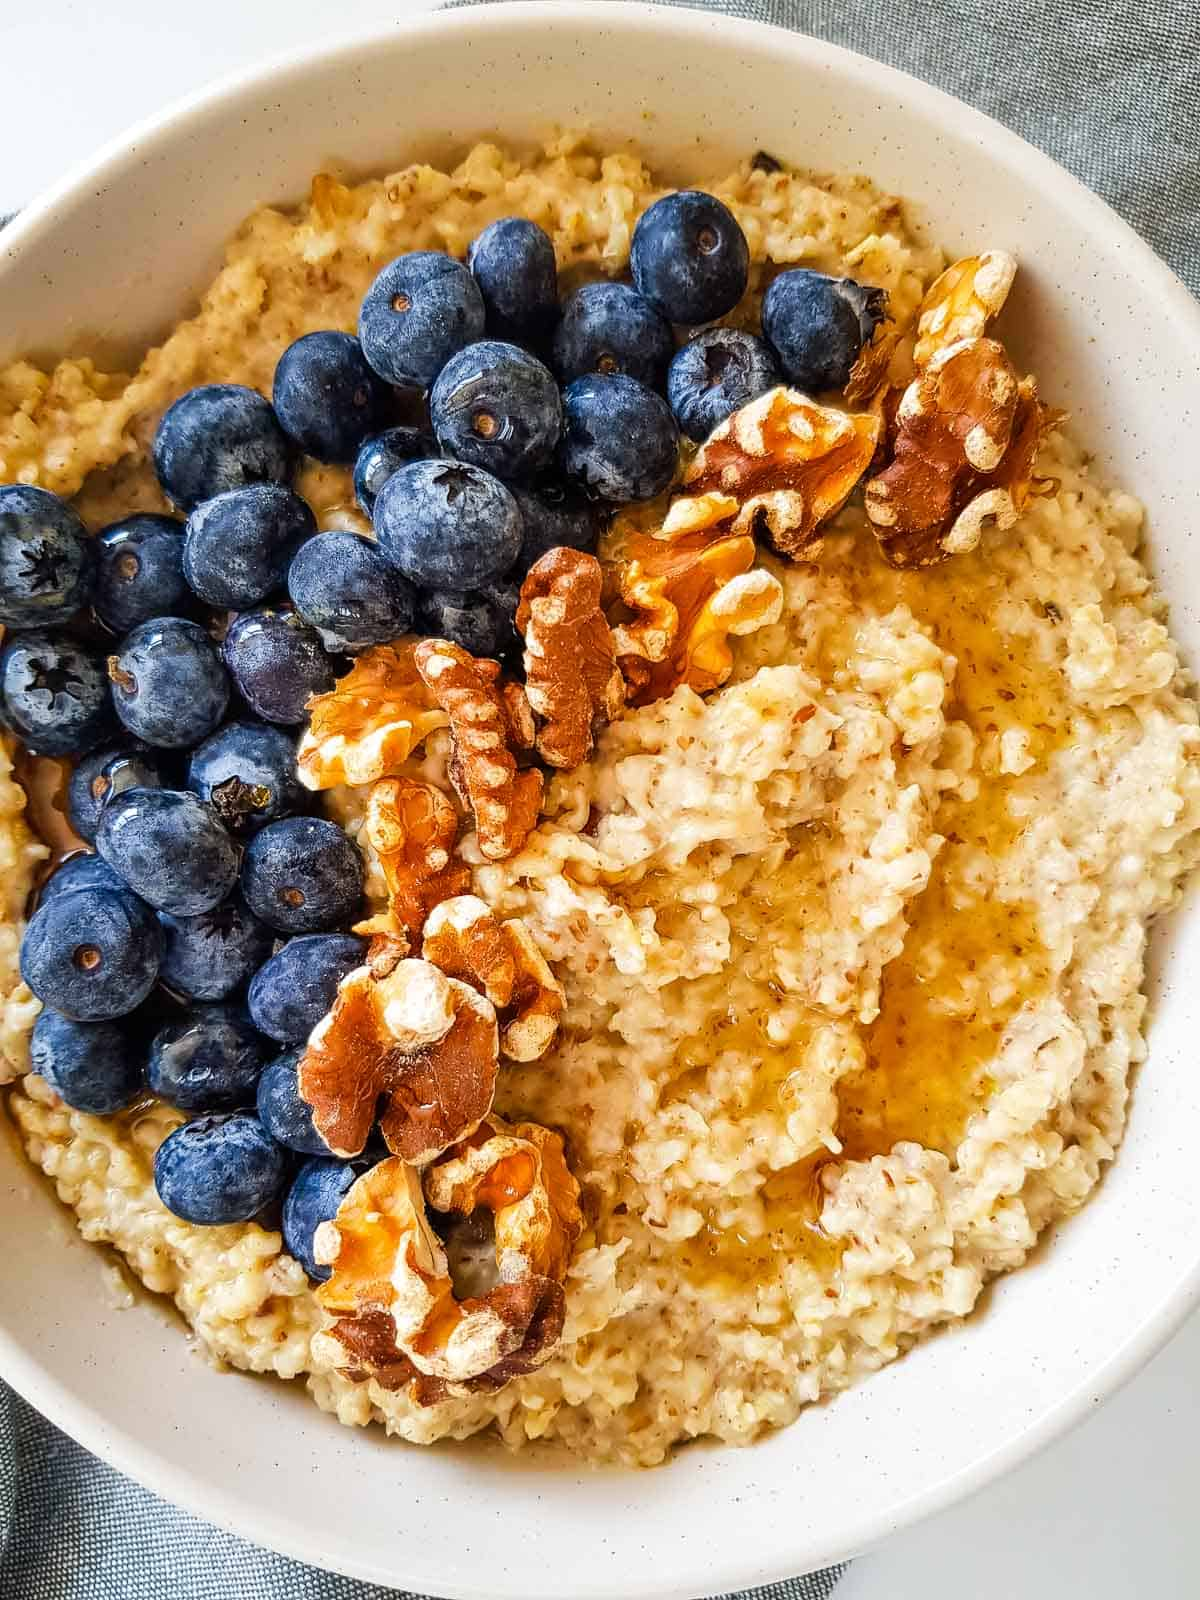 A white bowl with oatmeal, blueberries and walnuts.